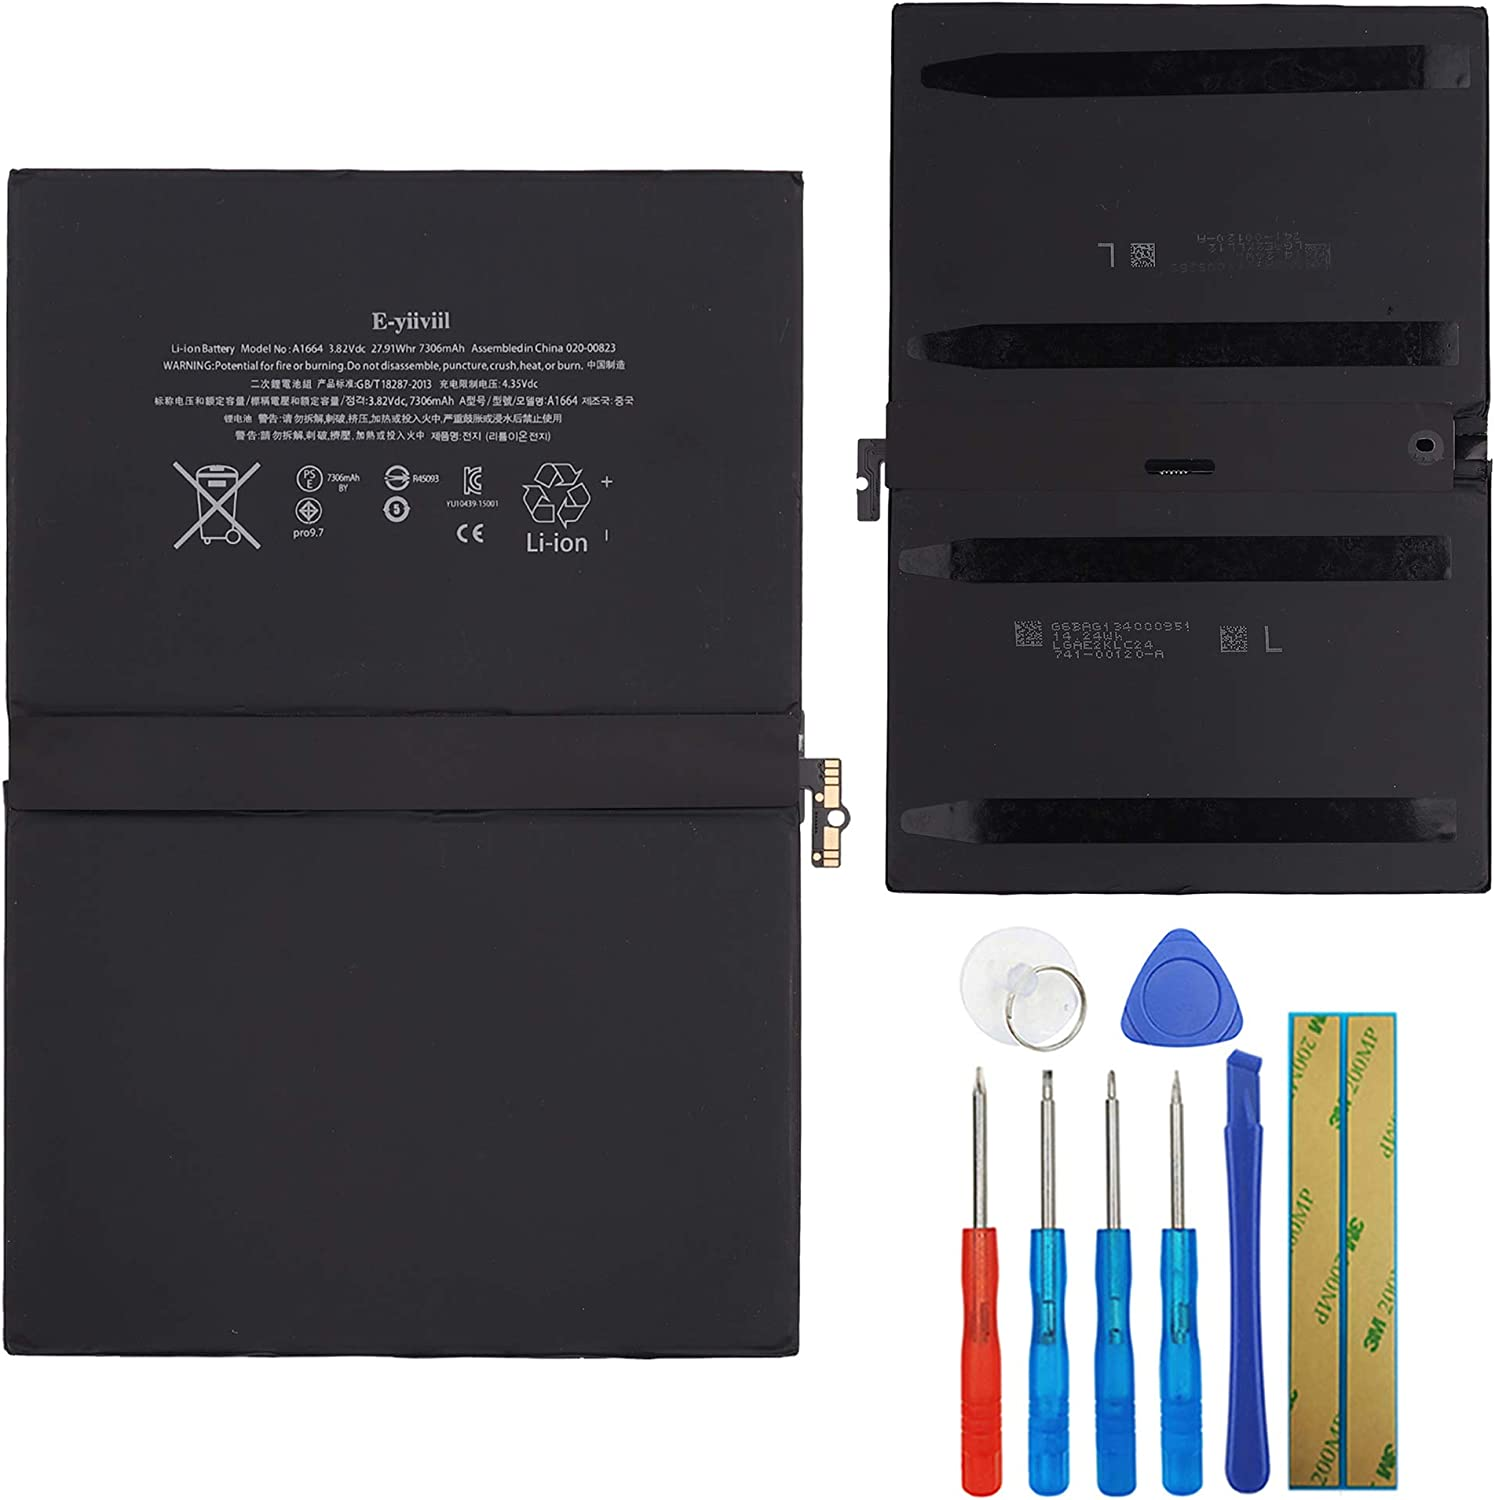 7306mAh Asesino Battery Compatible with iPad Pro 9.7 Models A1664 A1673 A1674 with Replacement Toolkit